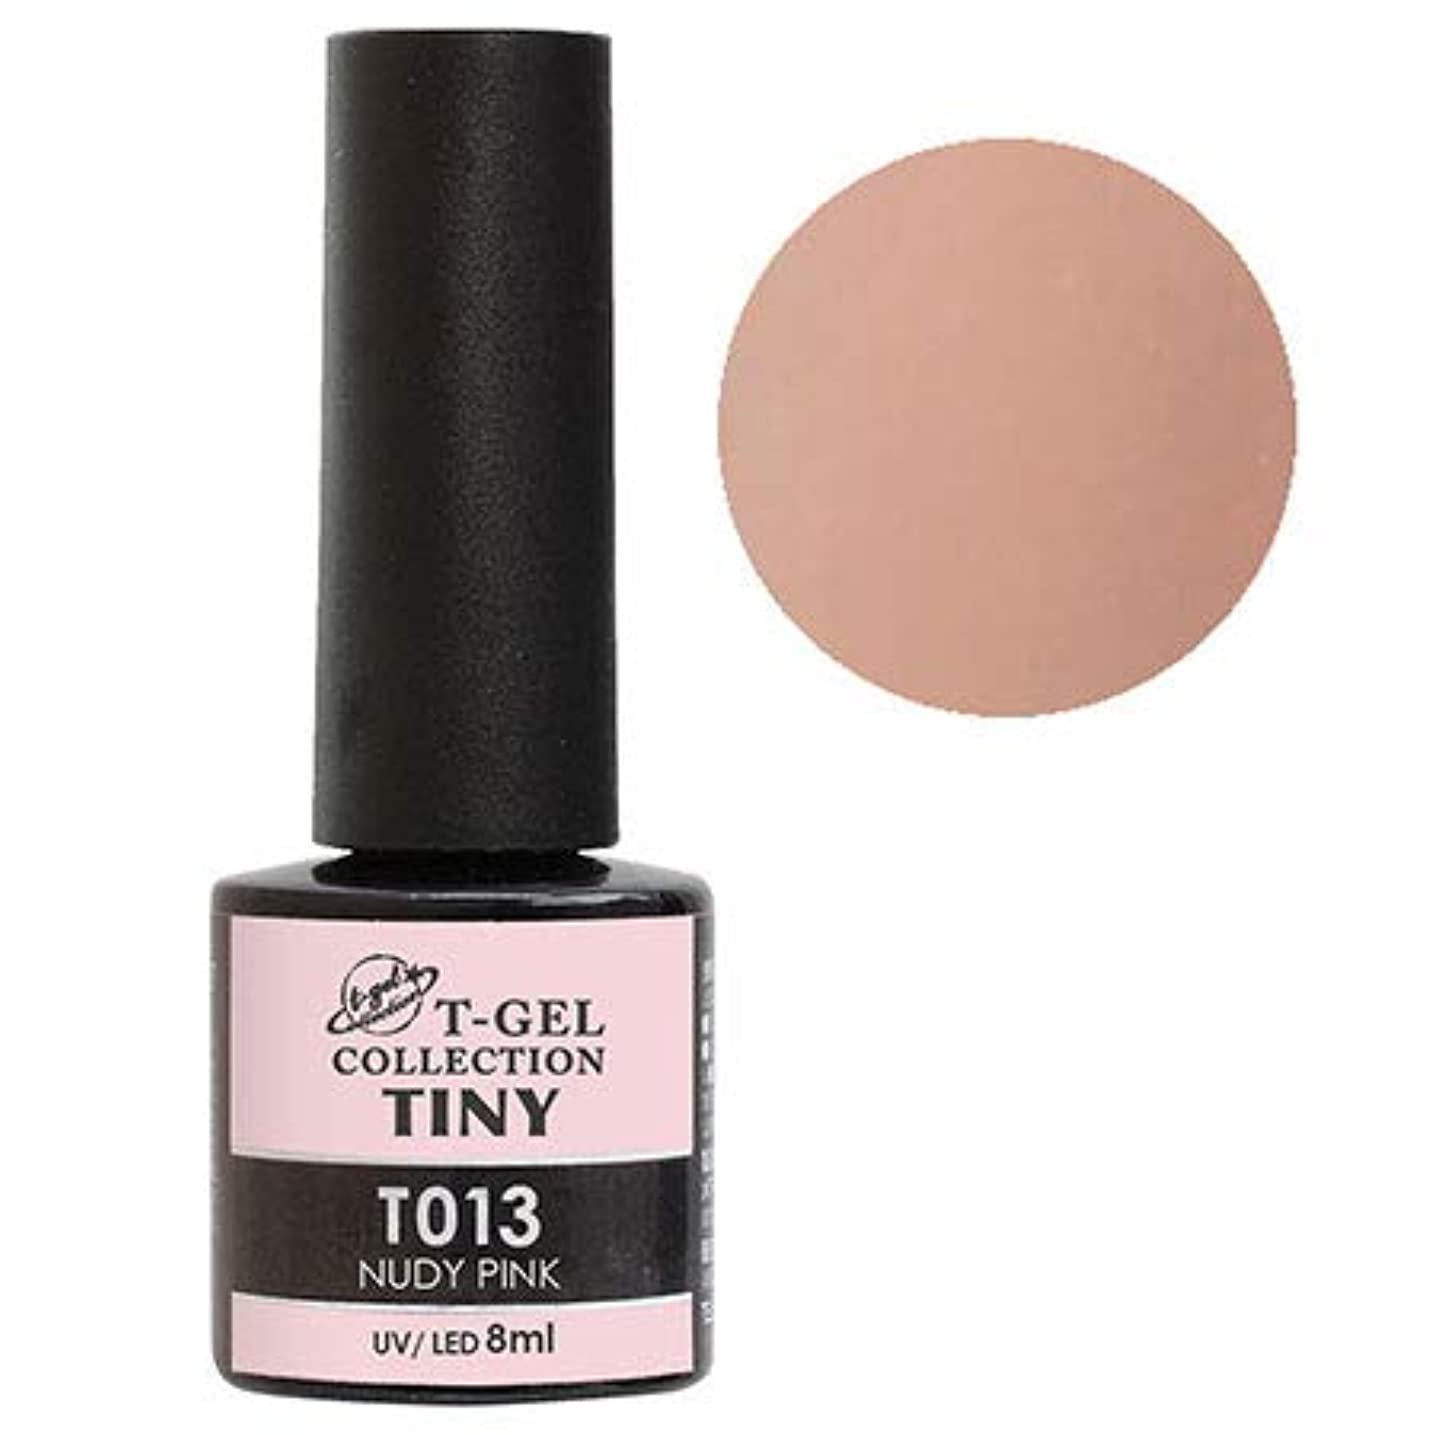 T-GEL COLLECTION TINY T013 ヌーディピンク 8ml